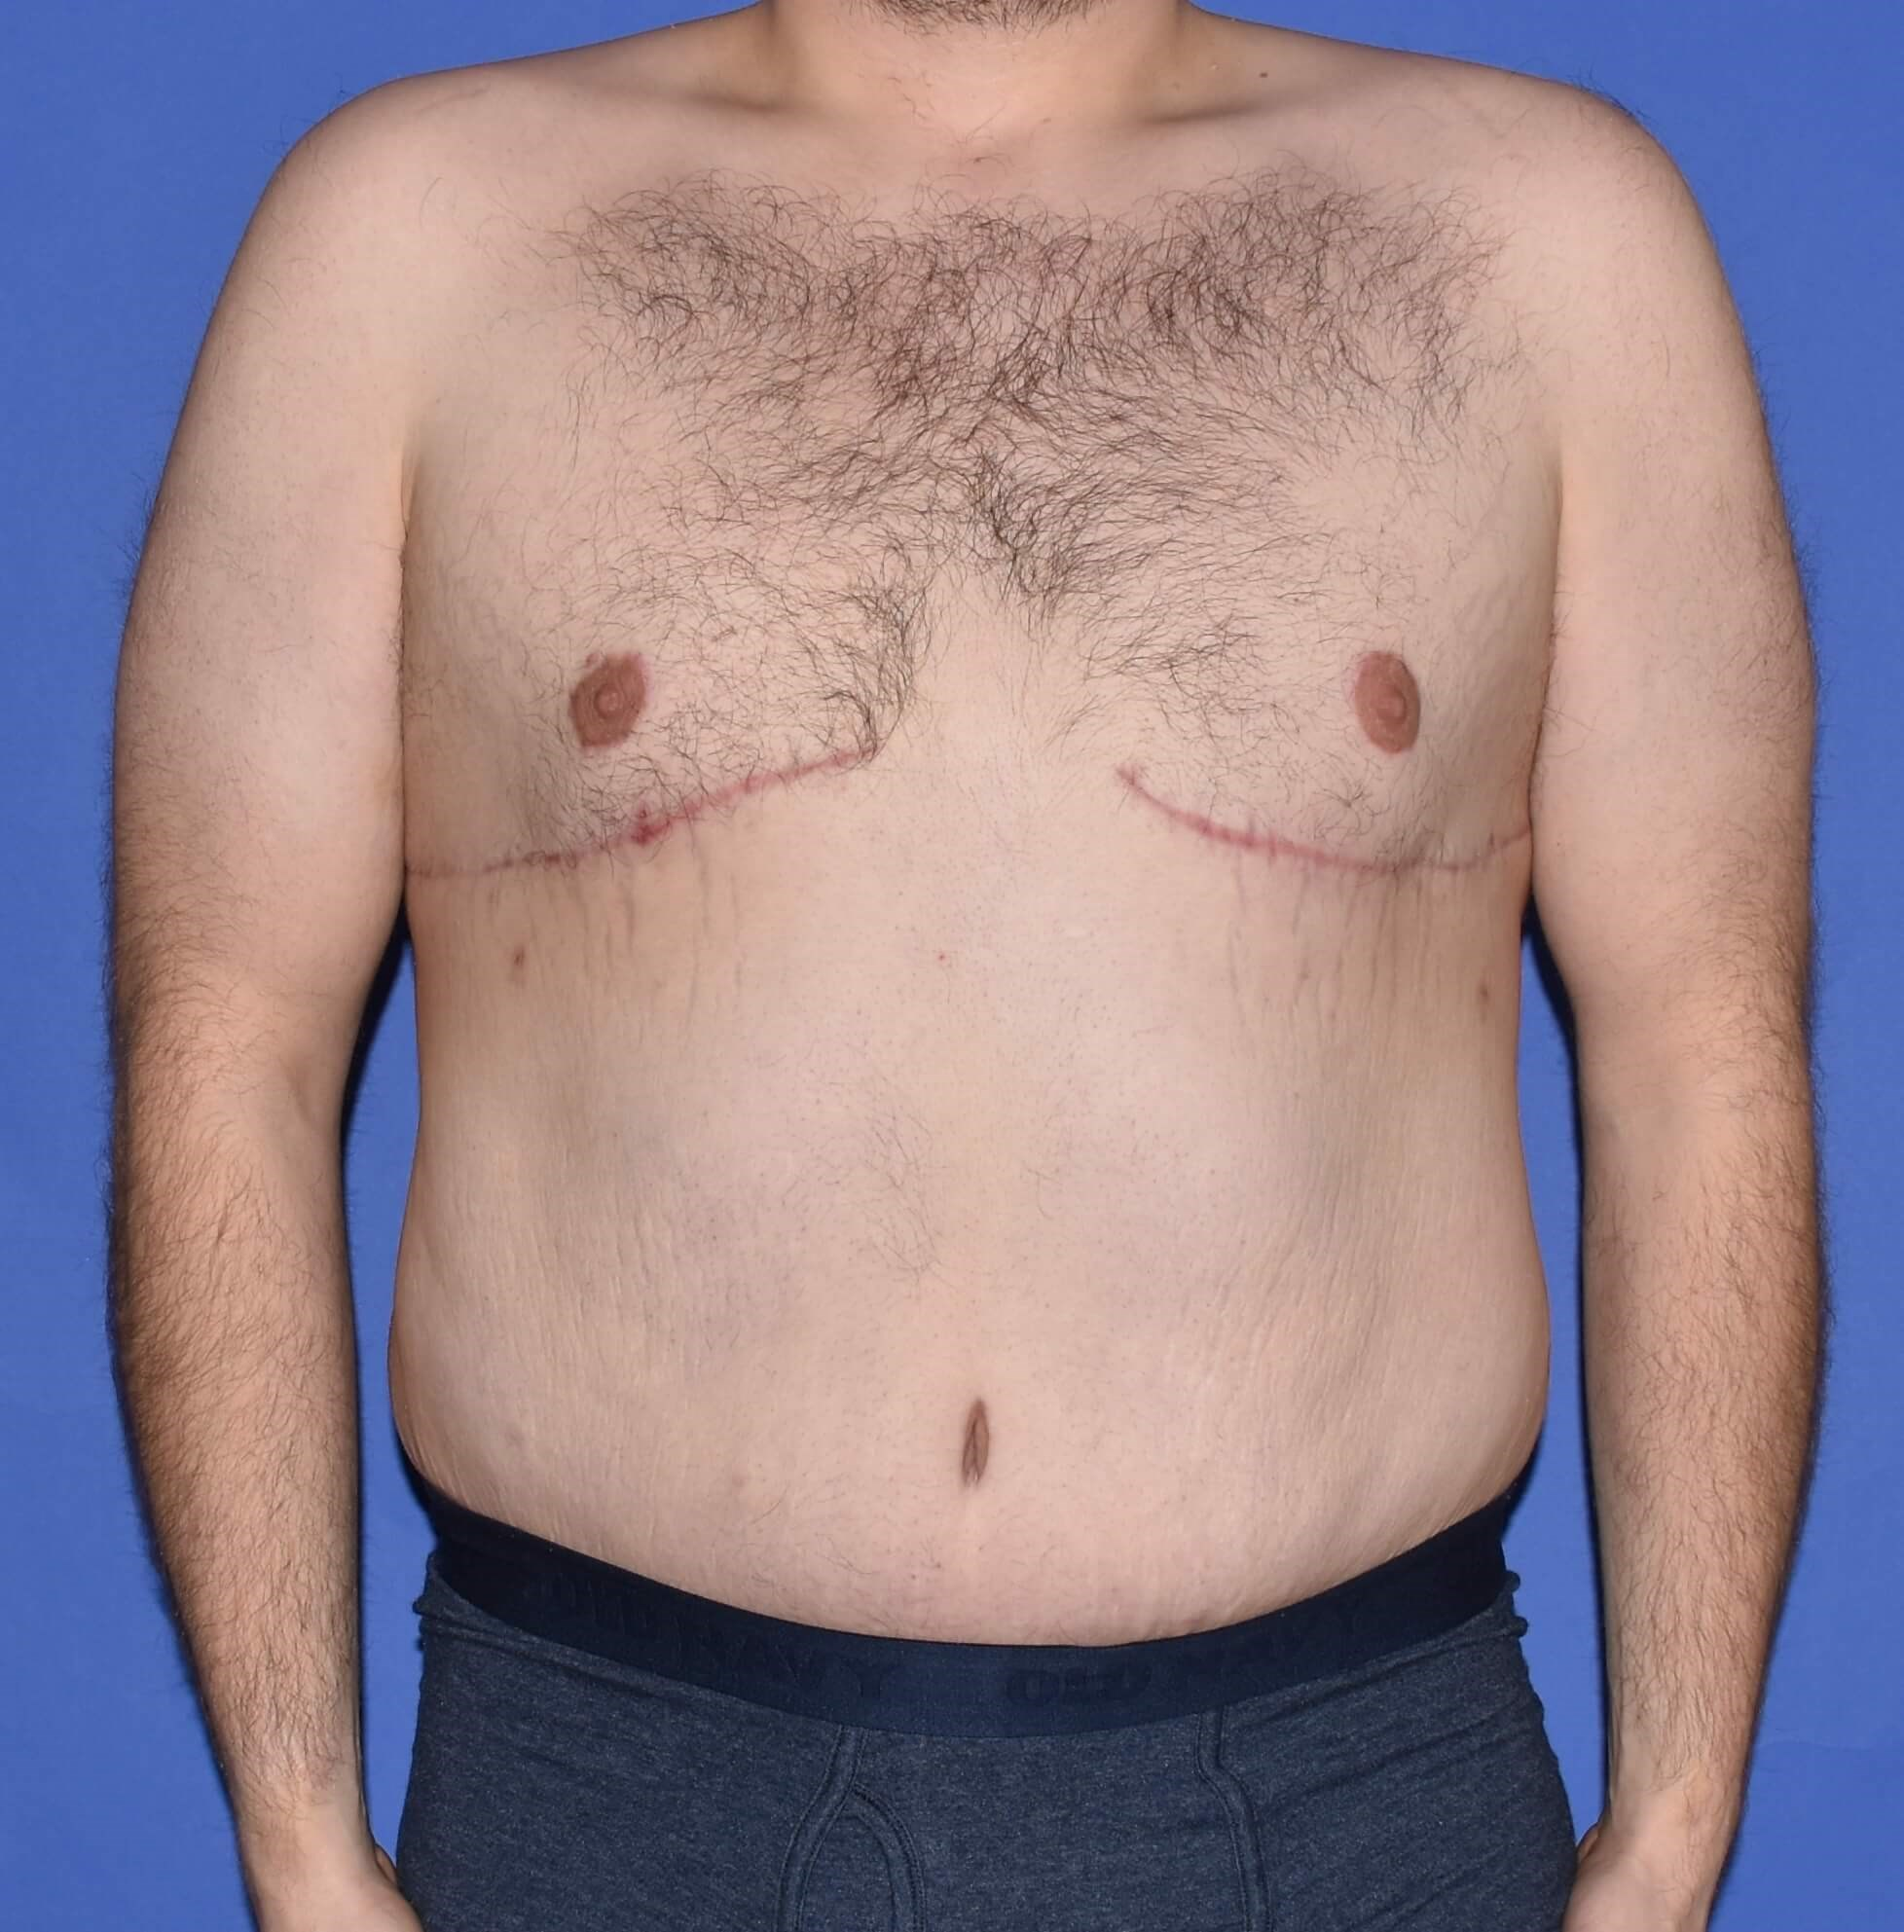 Gynecomastia Houston 4 months after surgery